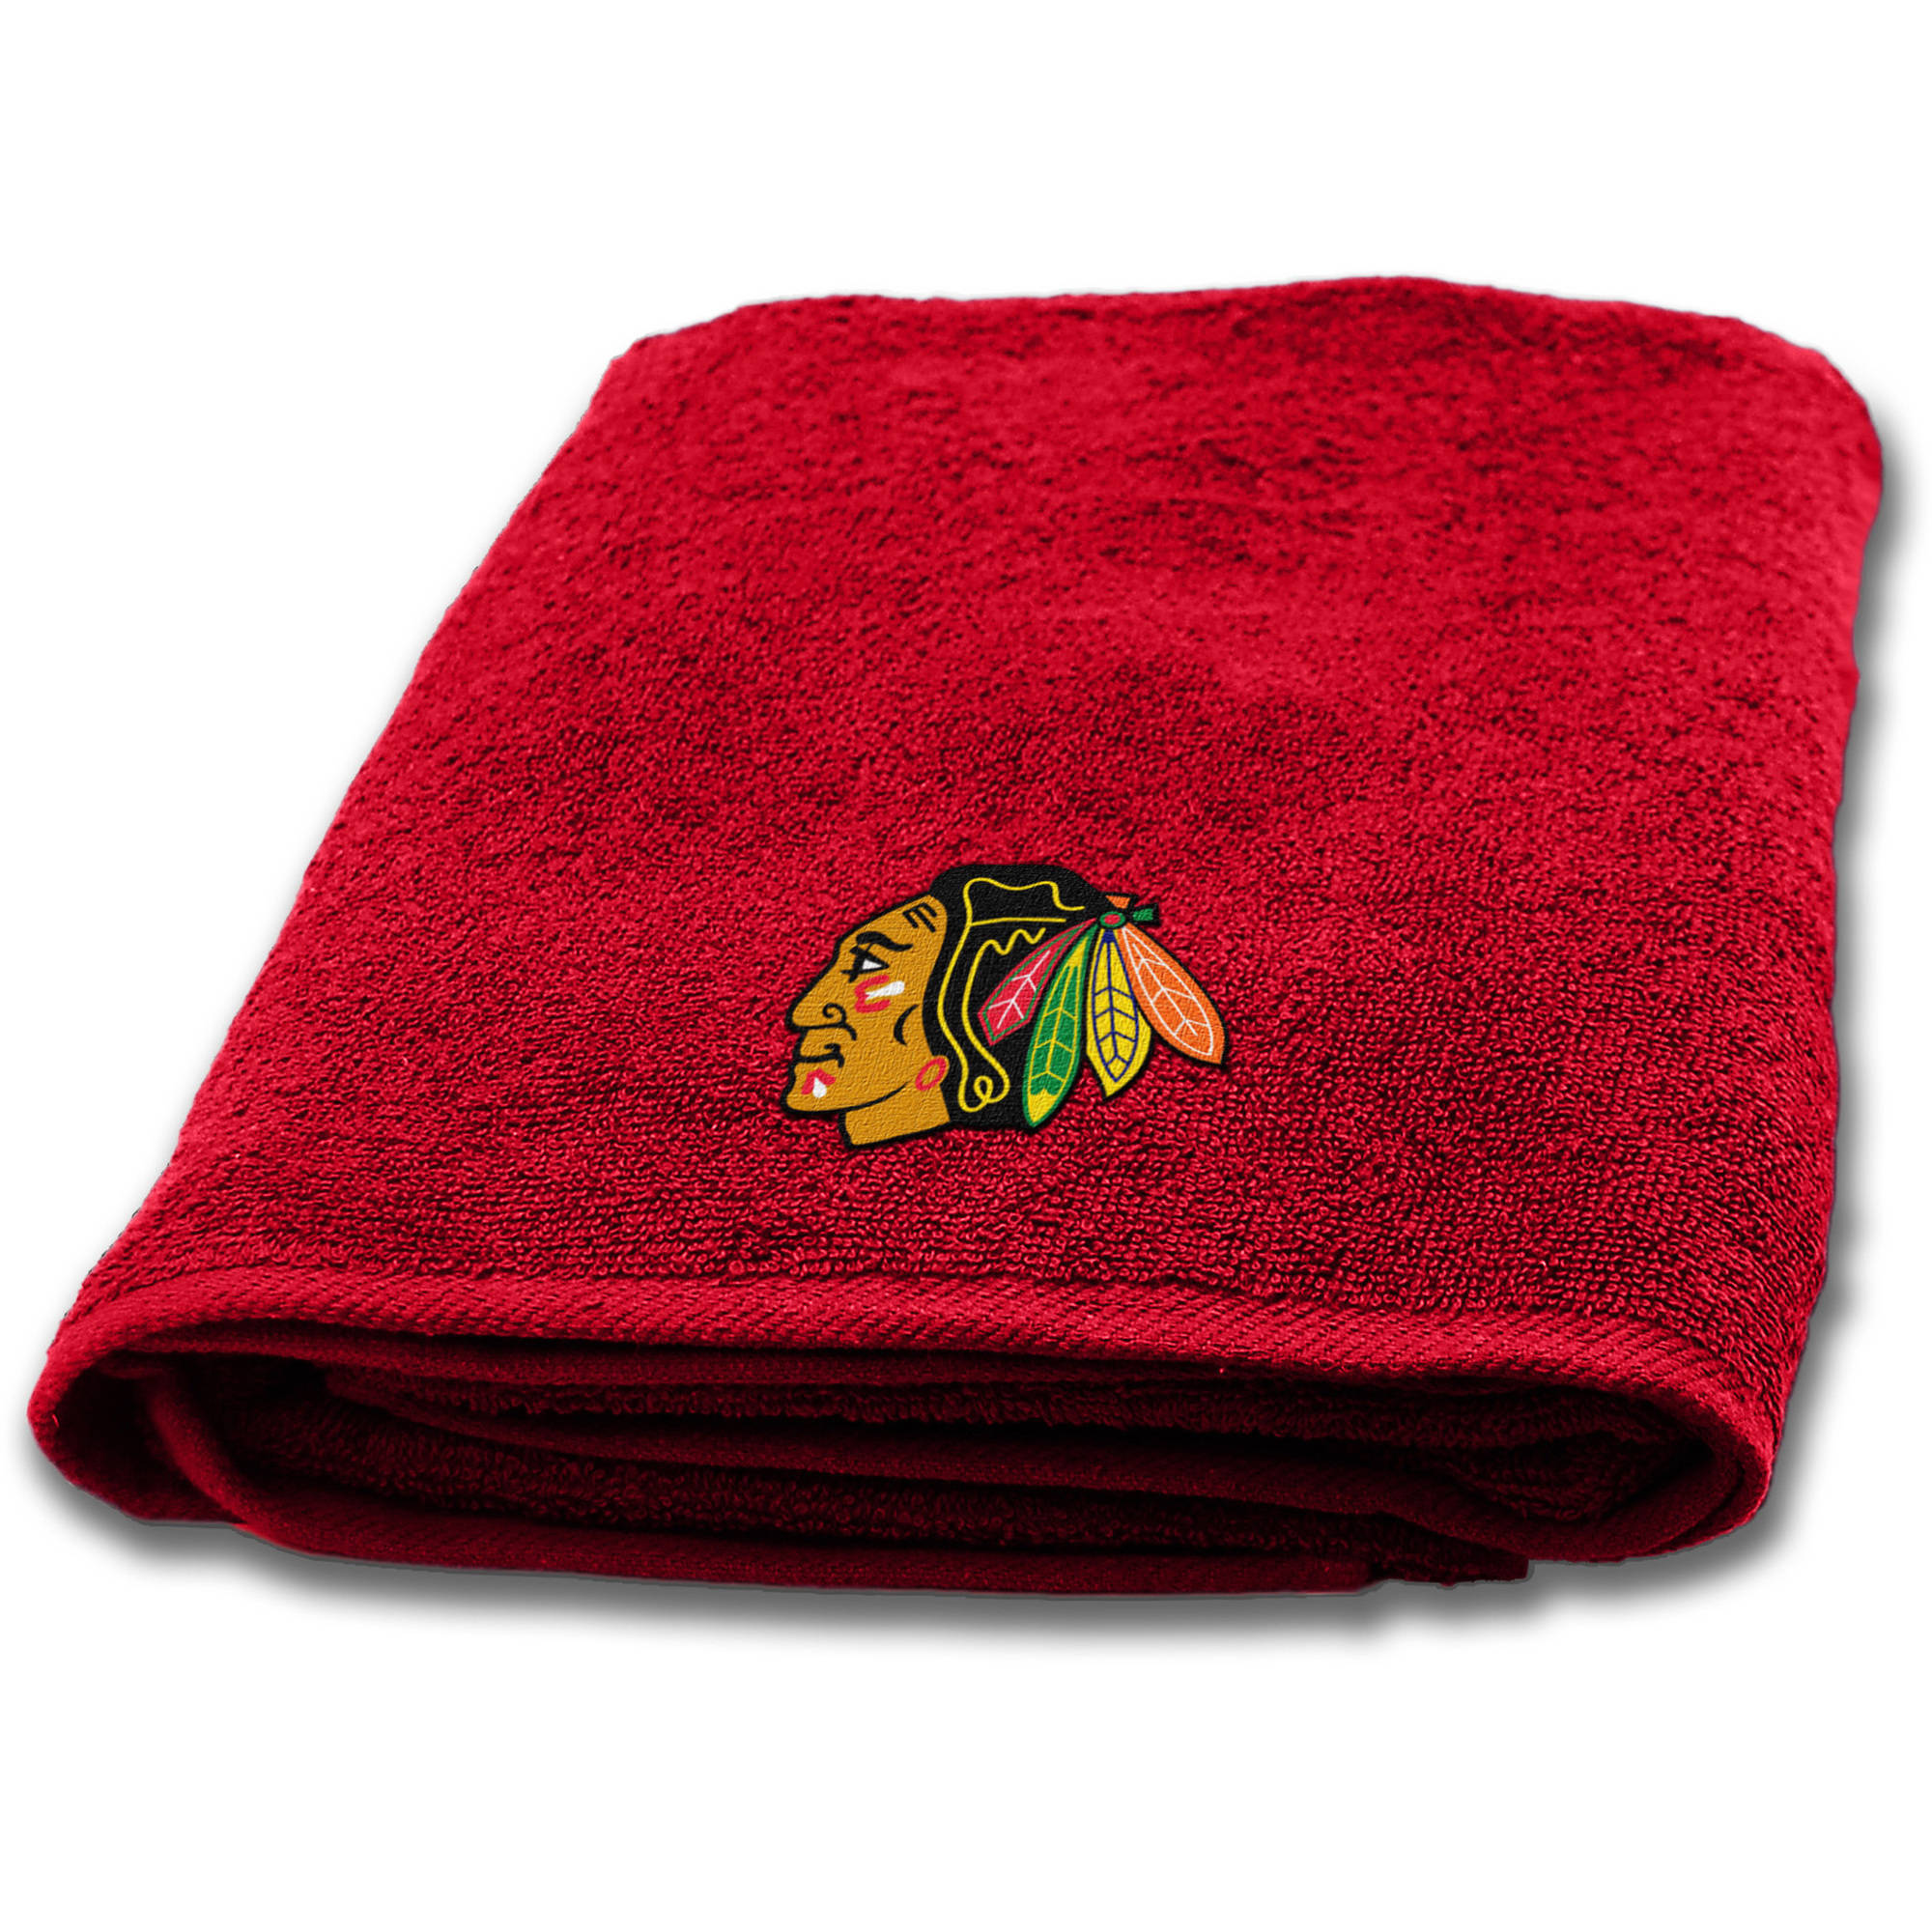 "NHL Chicago Blackhawks 25""x50"" Applique Bath Towel"